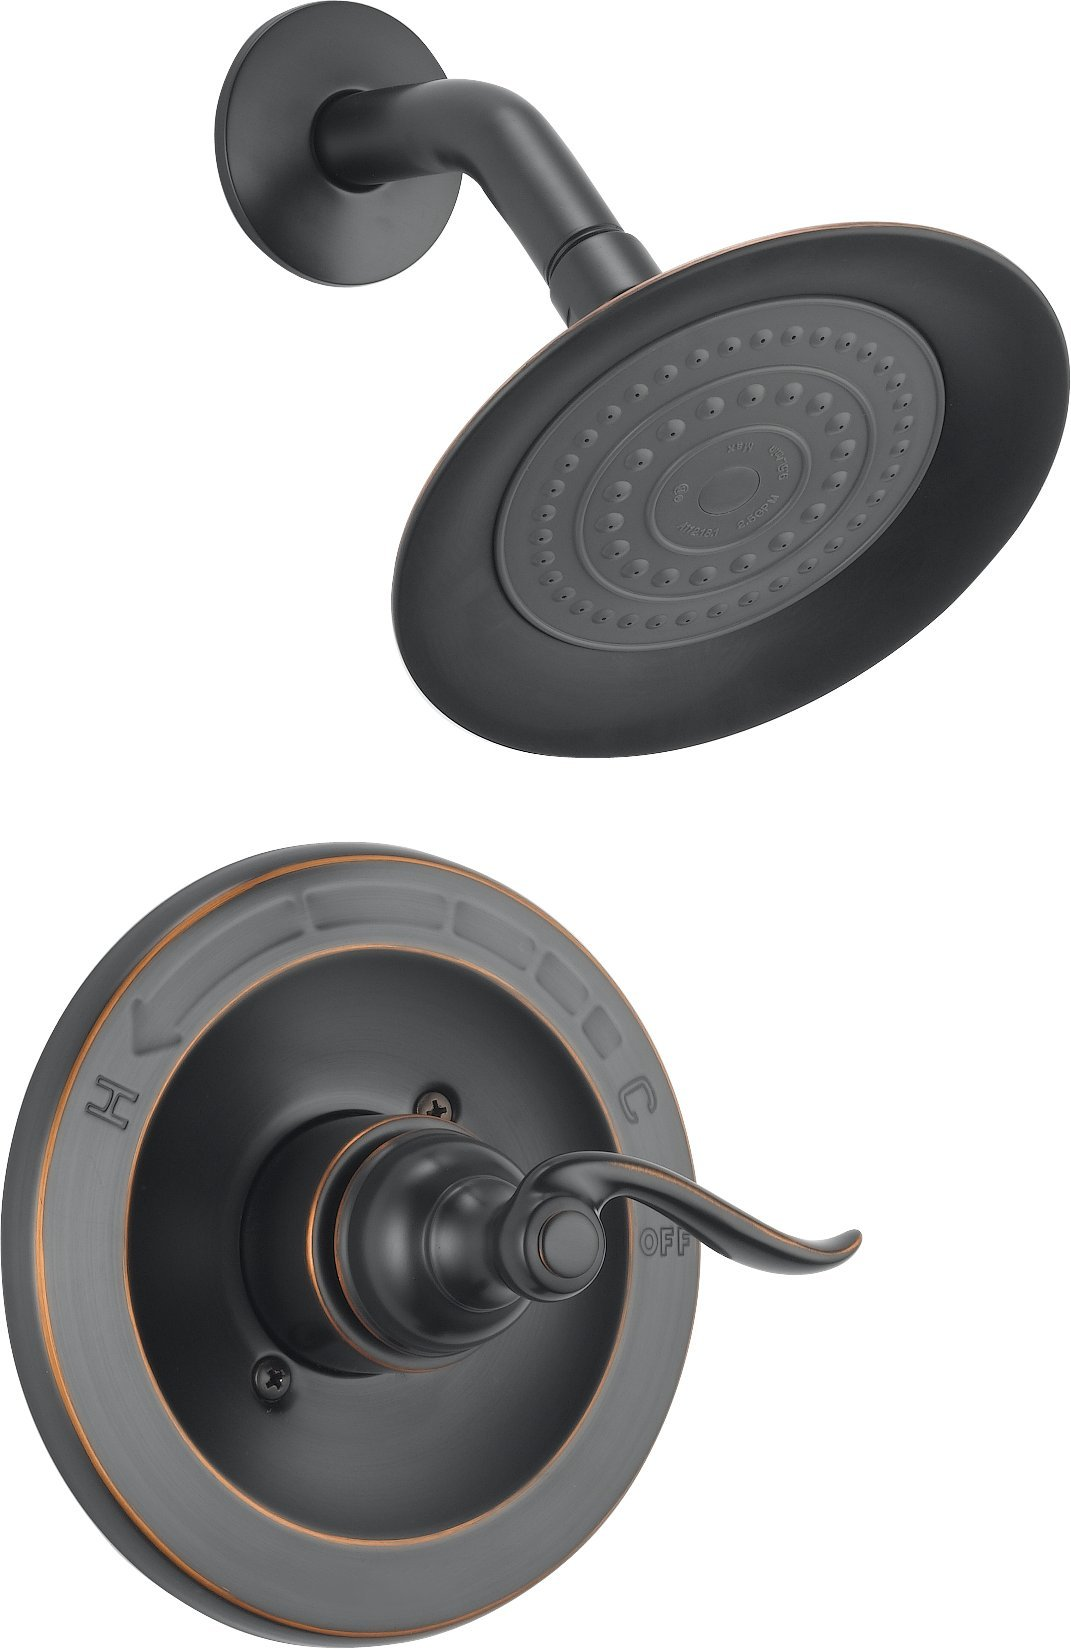 Delta Windemere Single-Function Shower Trim Kit with Single-Spray Shower Head, Oil Rubbed Bronze BT14296-OB (Valve Not Included)